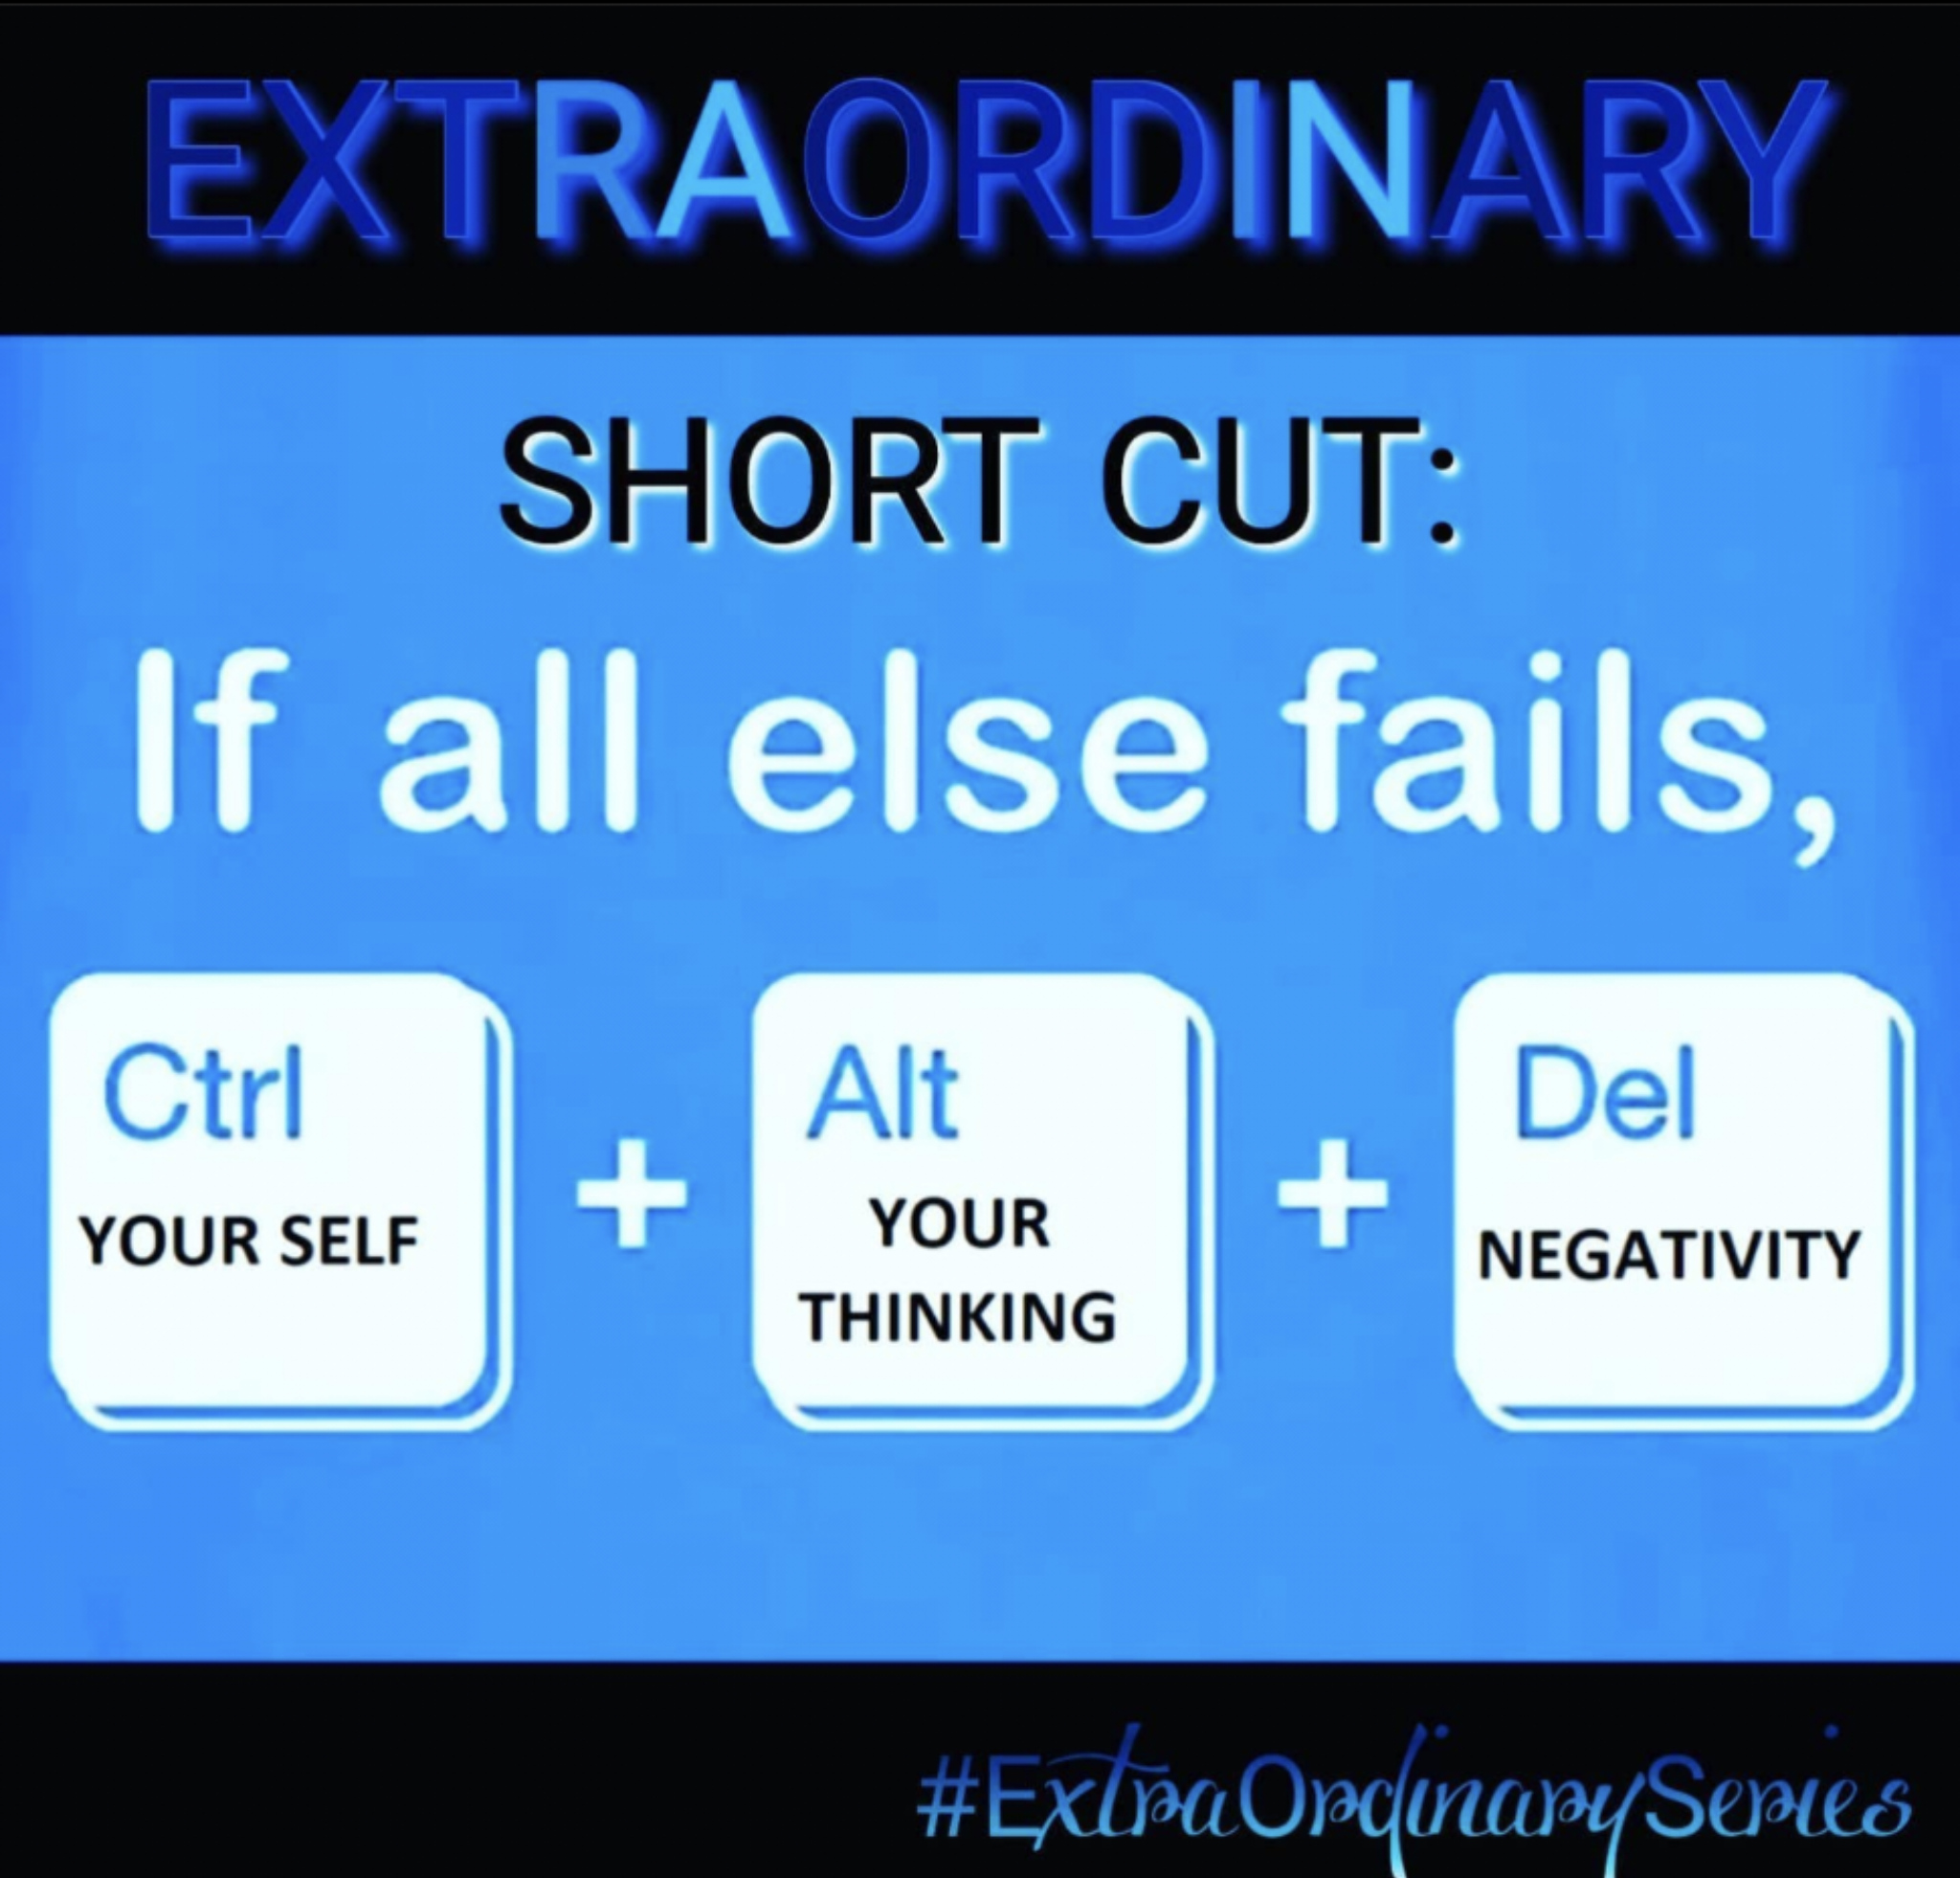 ExtraOrdinary Shortcut